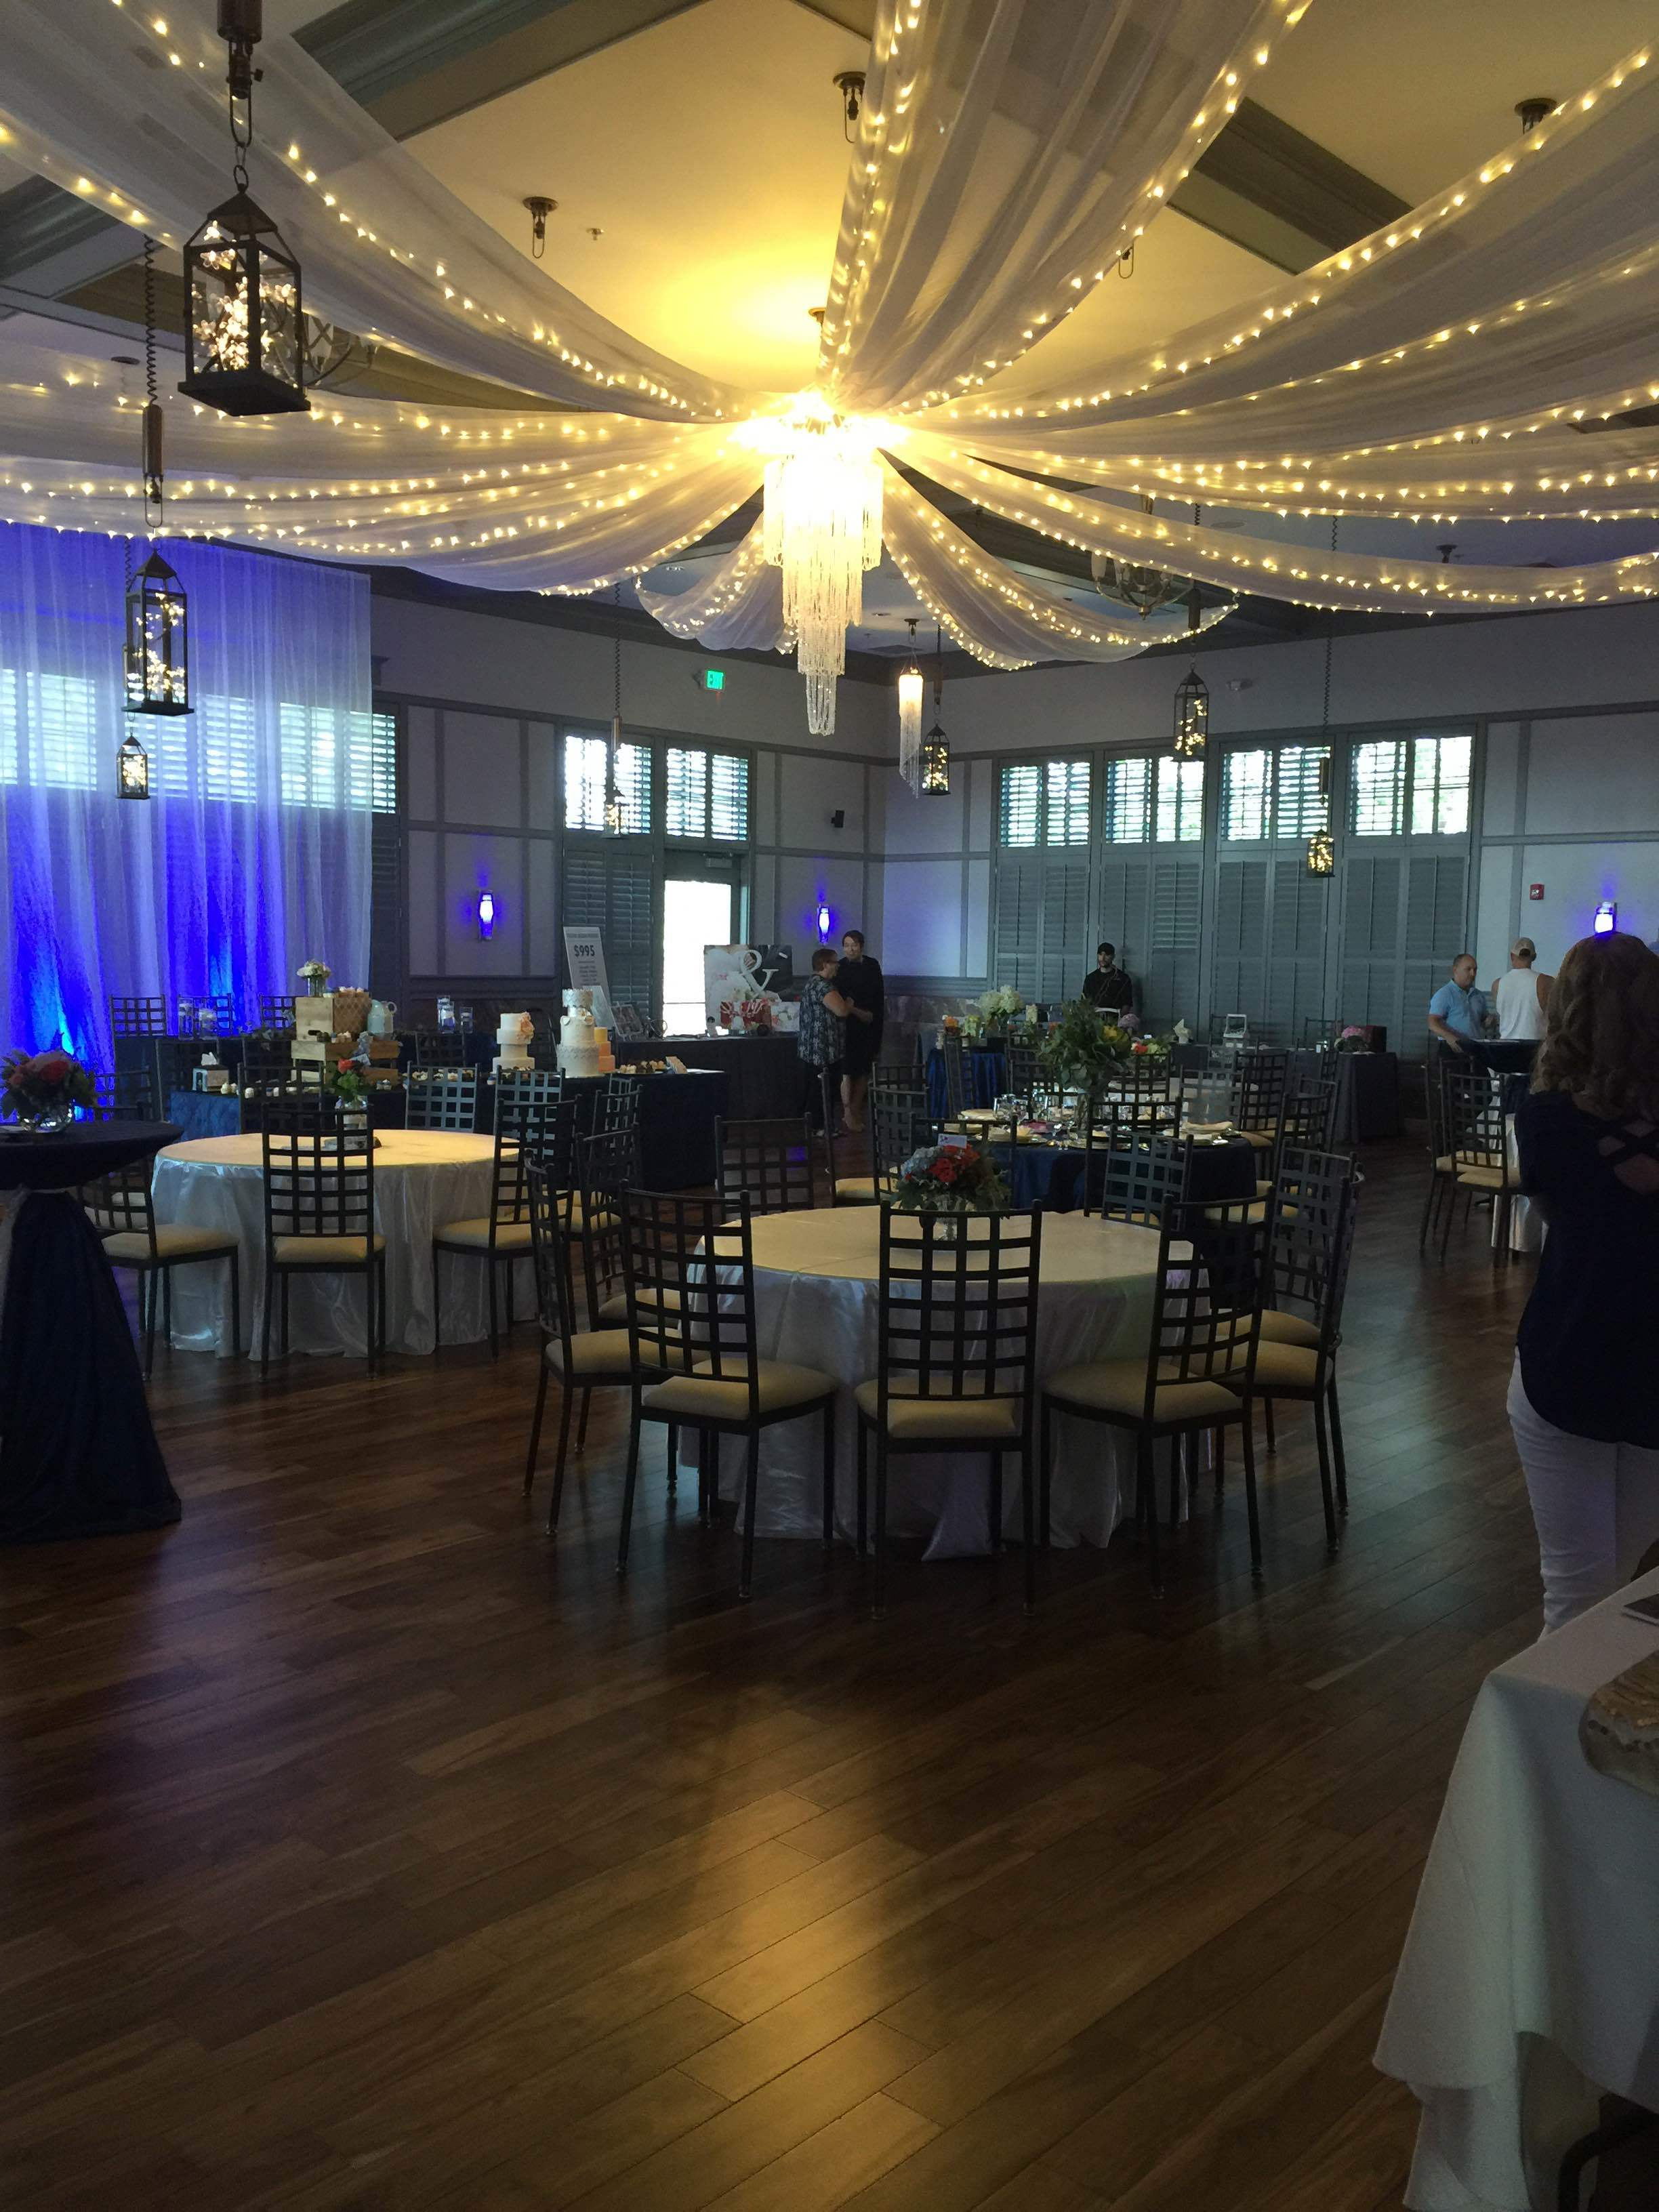 noahs' event venue madison wi - madison wisconsin wedding planner -